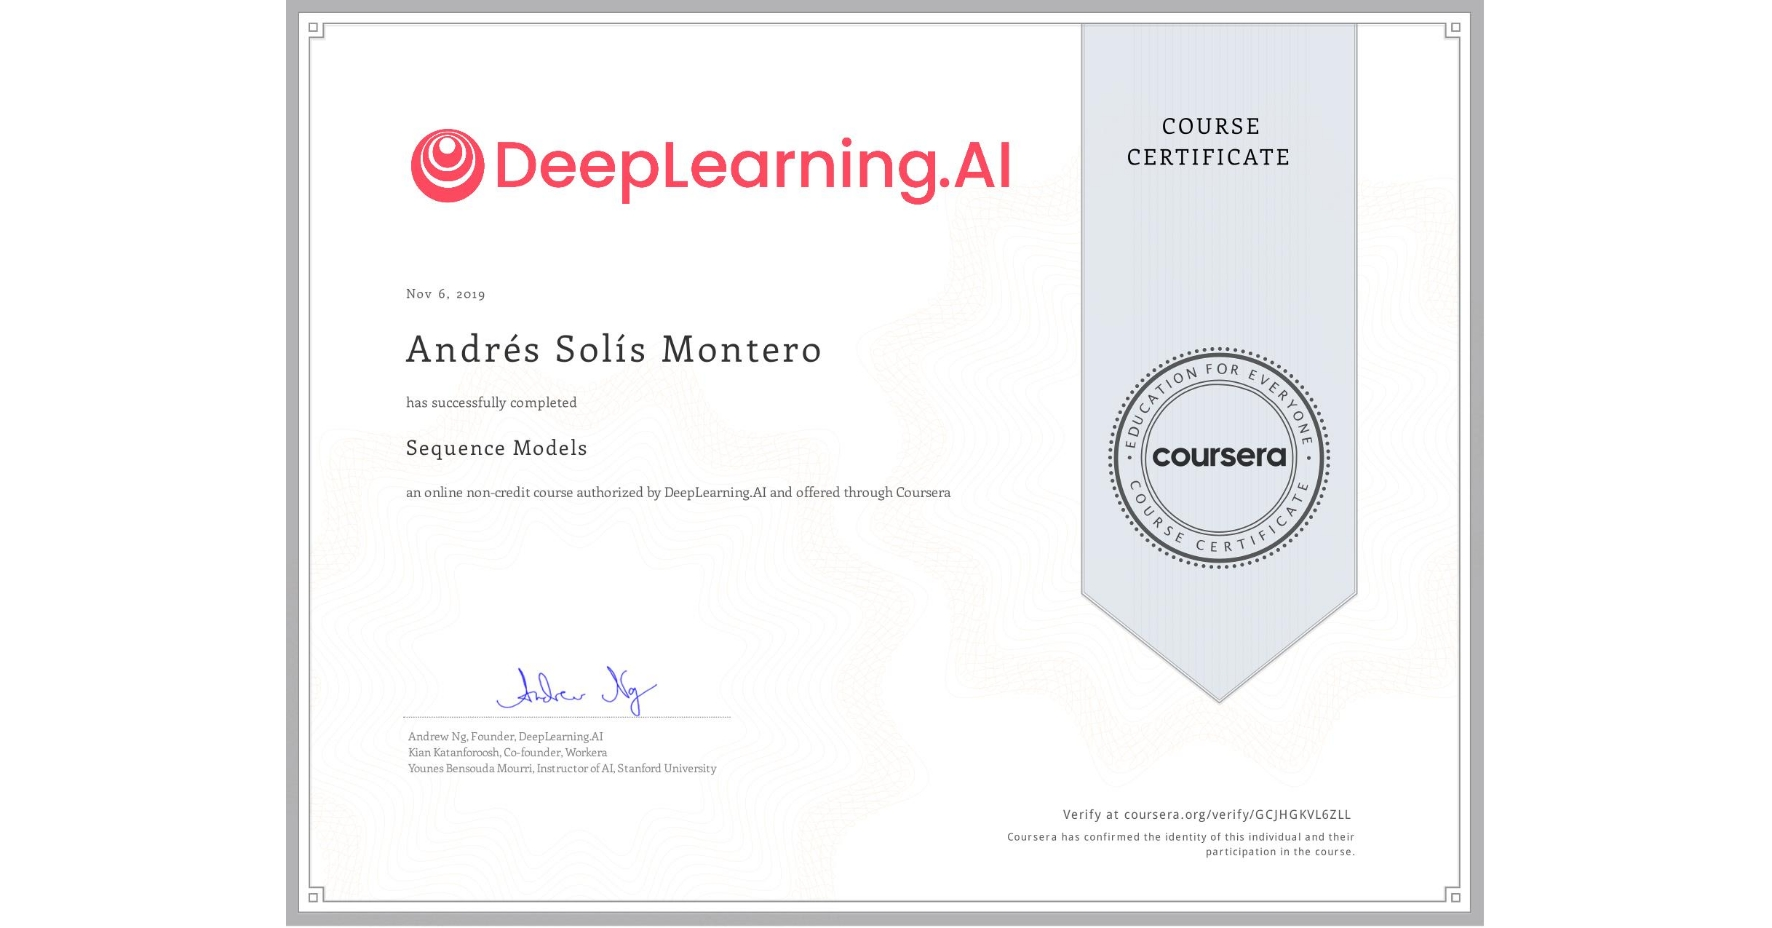 View certificate for Andrés Solís Montero, Sequence Models, an online non-credit course authorized by DeepLearning.AI and offered through Coursera